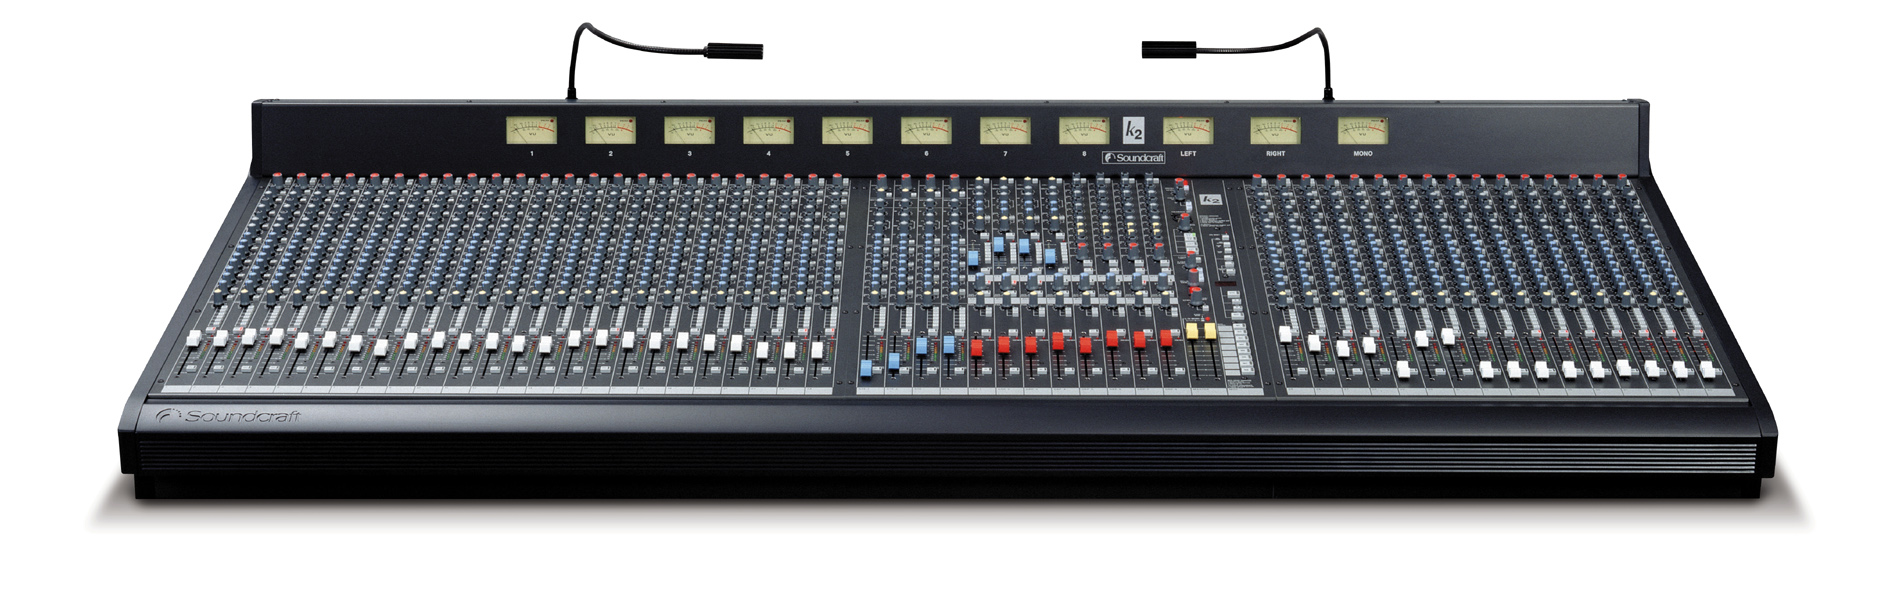 15 Setting Up Your Work Environment Digital Sound Music 1000 Ideas About Buffer Amplifier On Pinterest Audio Figure 143 Soundcraft K2 Analog Mixing Console